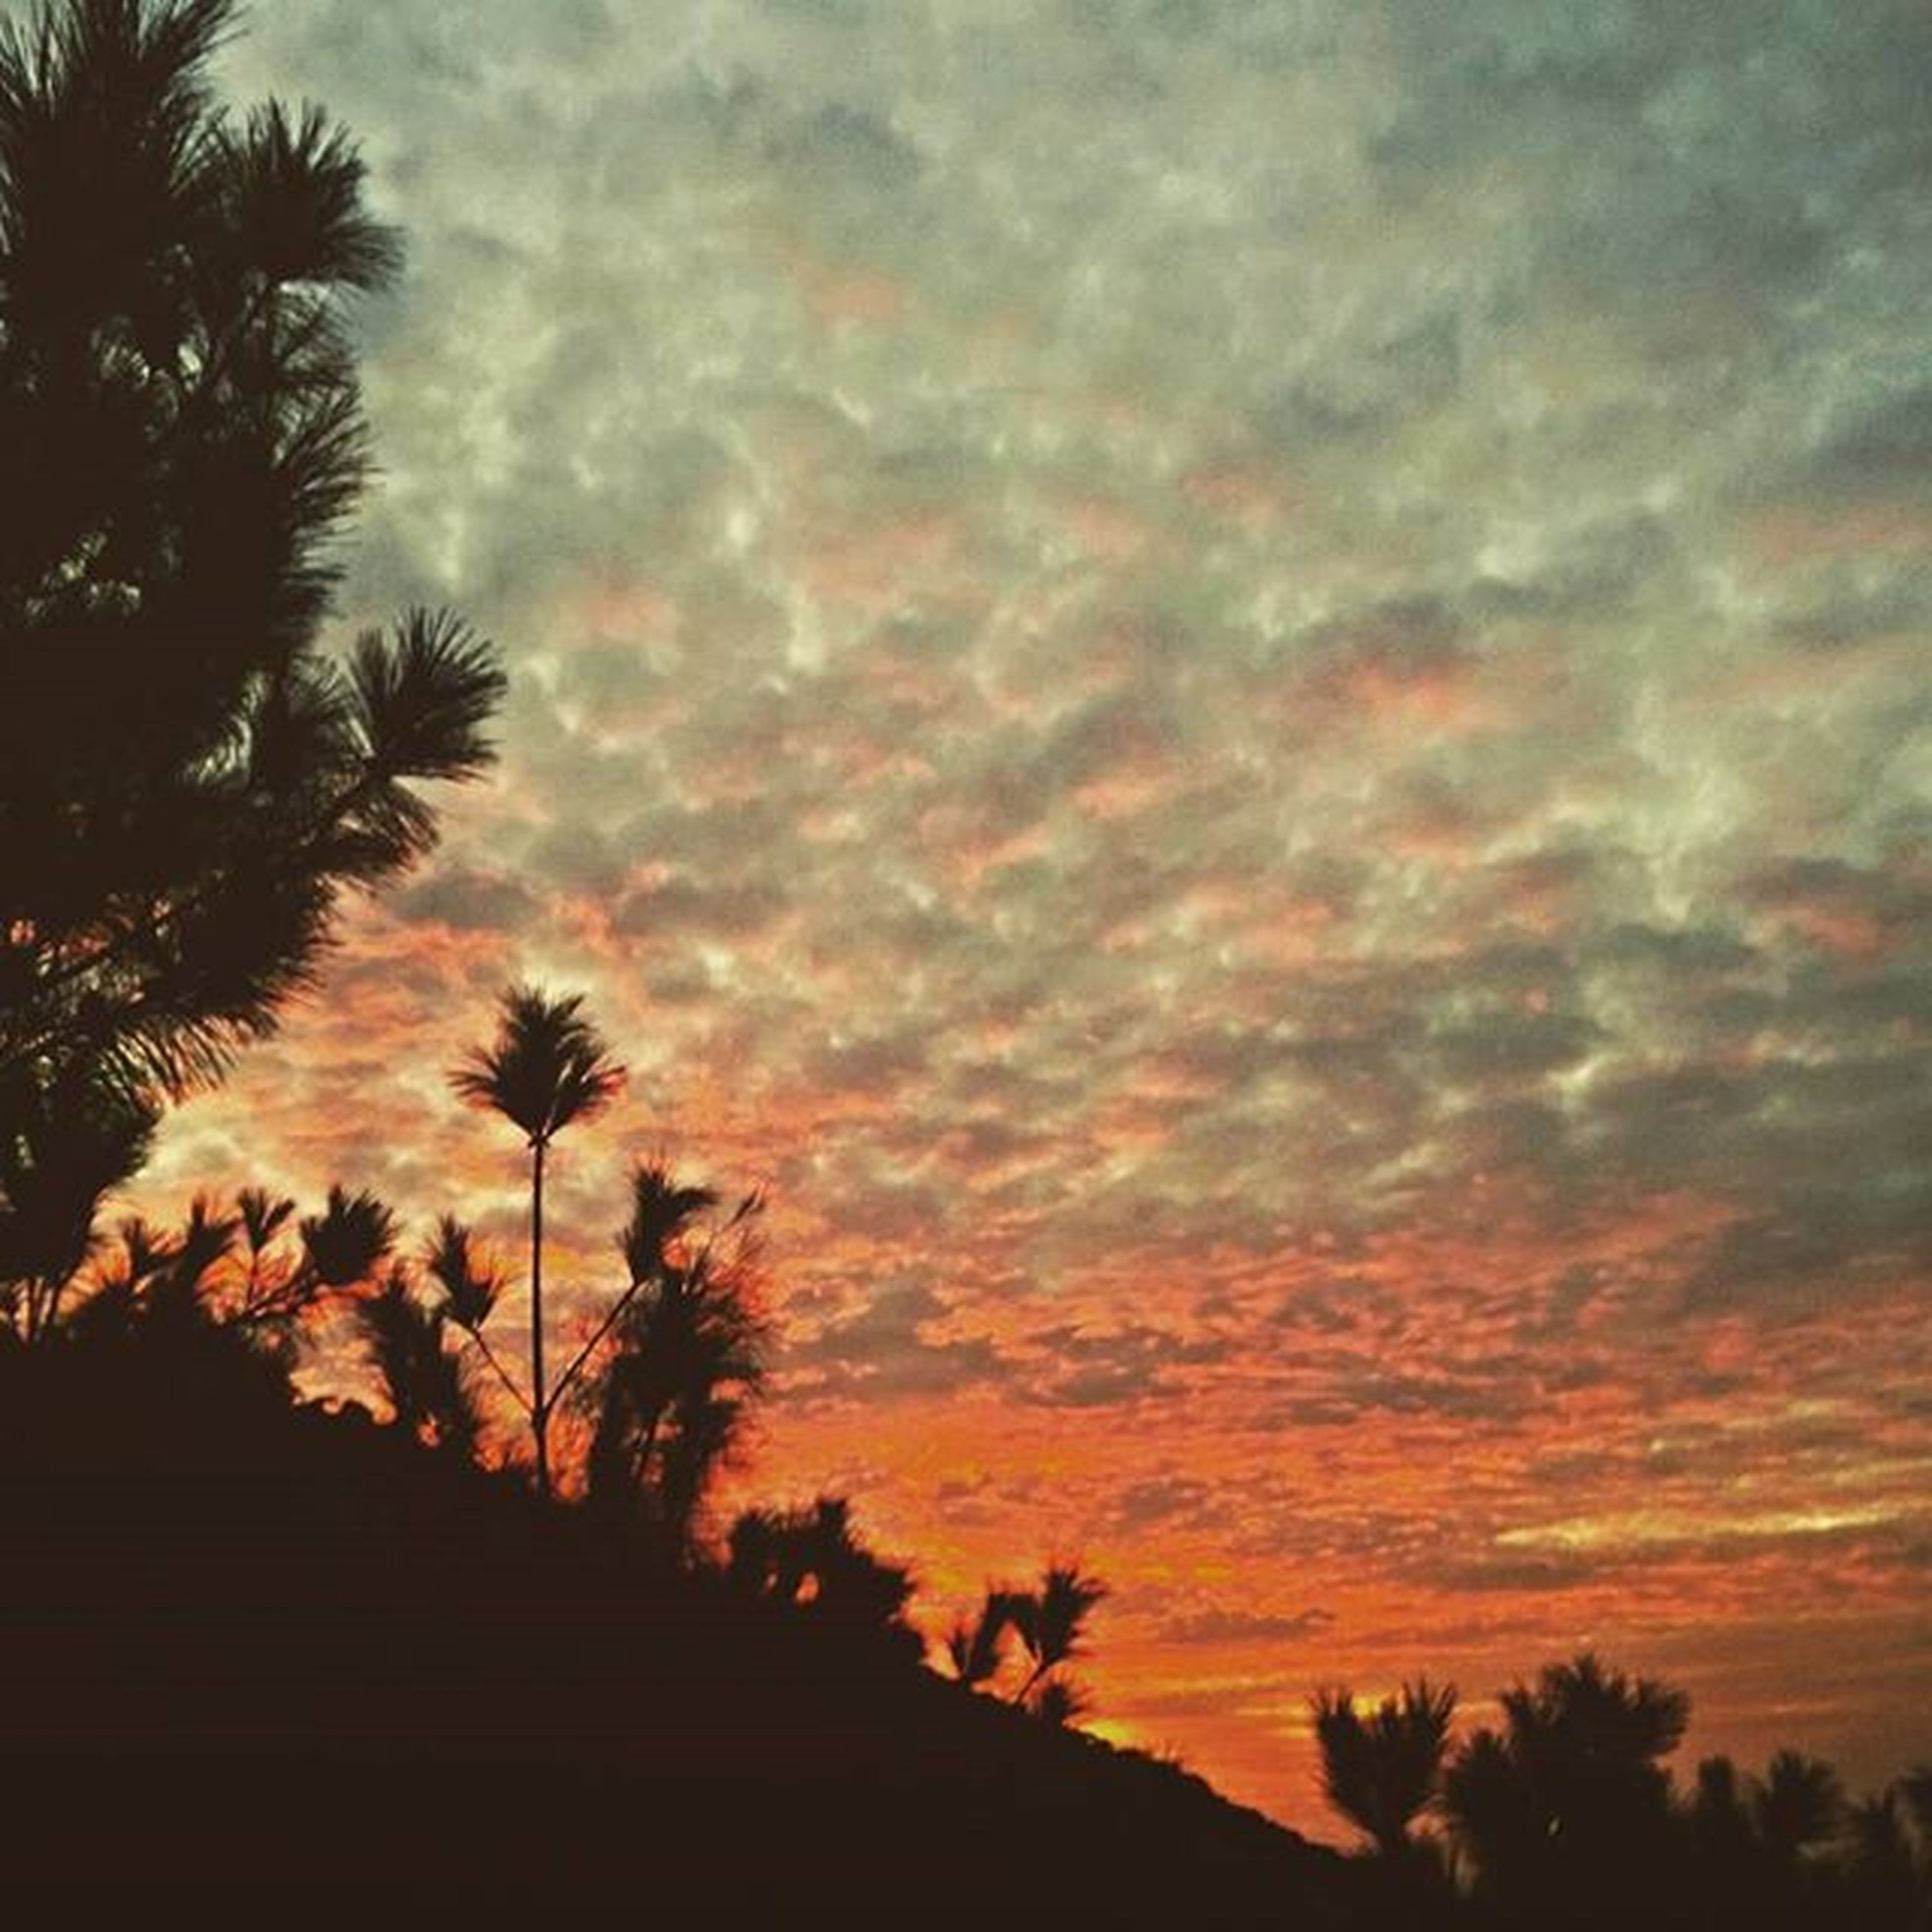 sunset, silhouette, sky, palm tree, beauty in nature, tree, cloud - sky, tranquility, scenics, tranquil scene, orange color, nature, dramatic sky, low angle view, cloudy, cloud, idyllic, growth, outdoors, no people